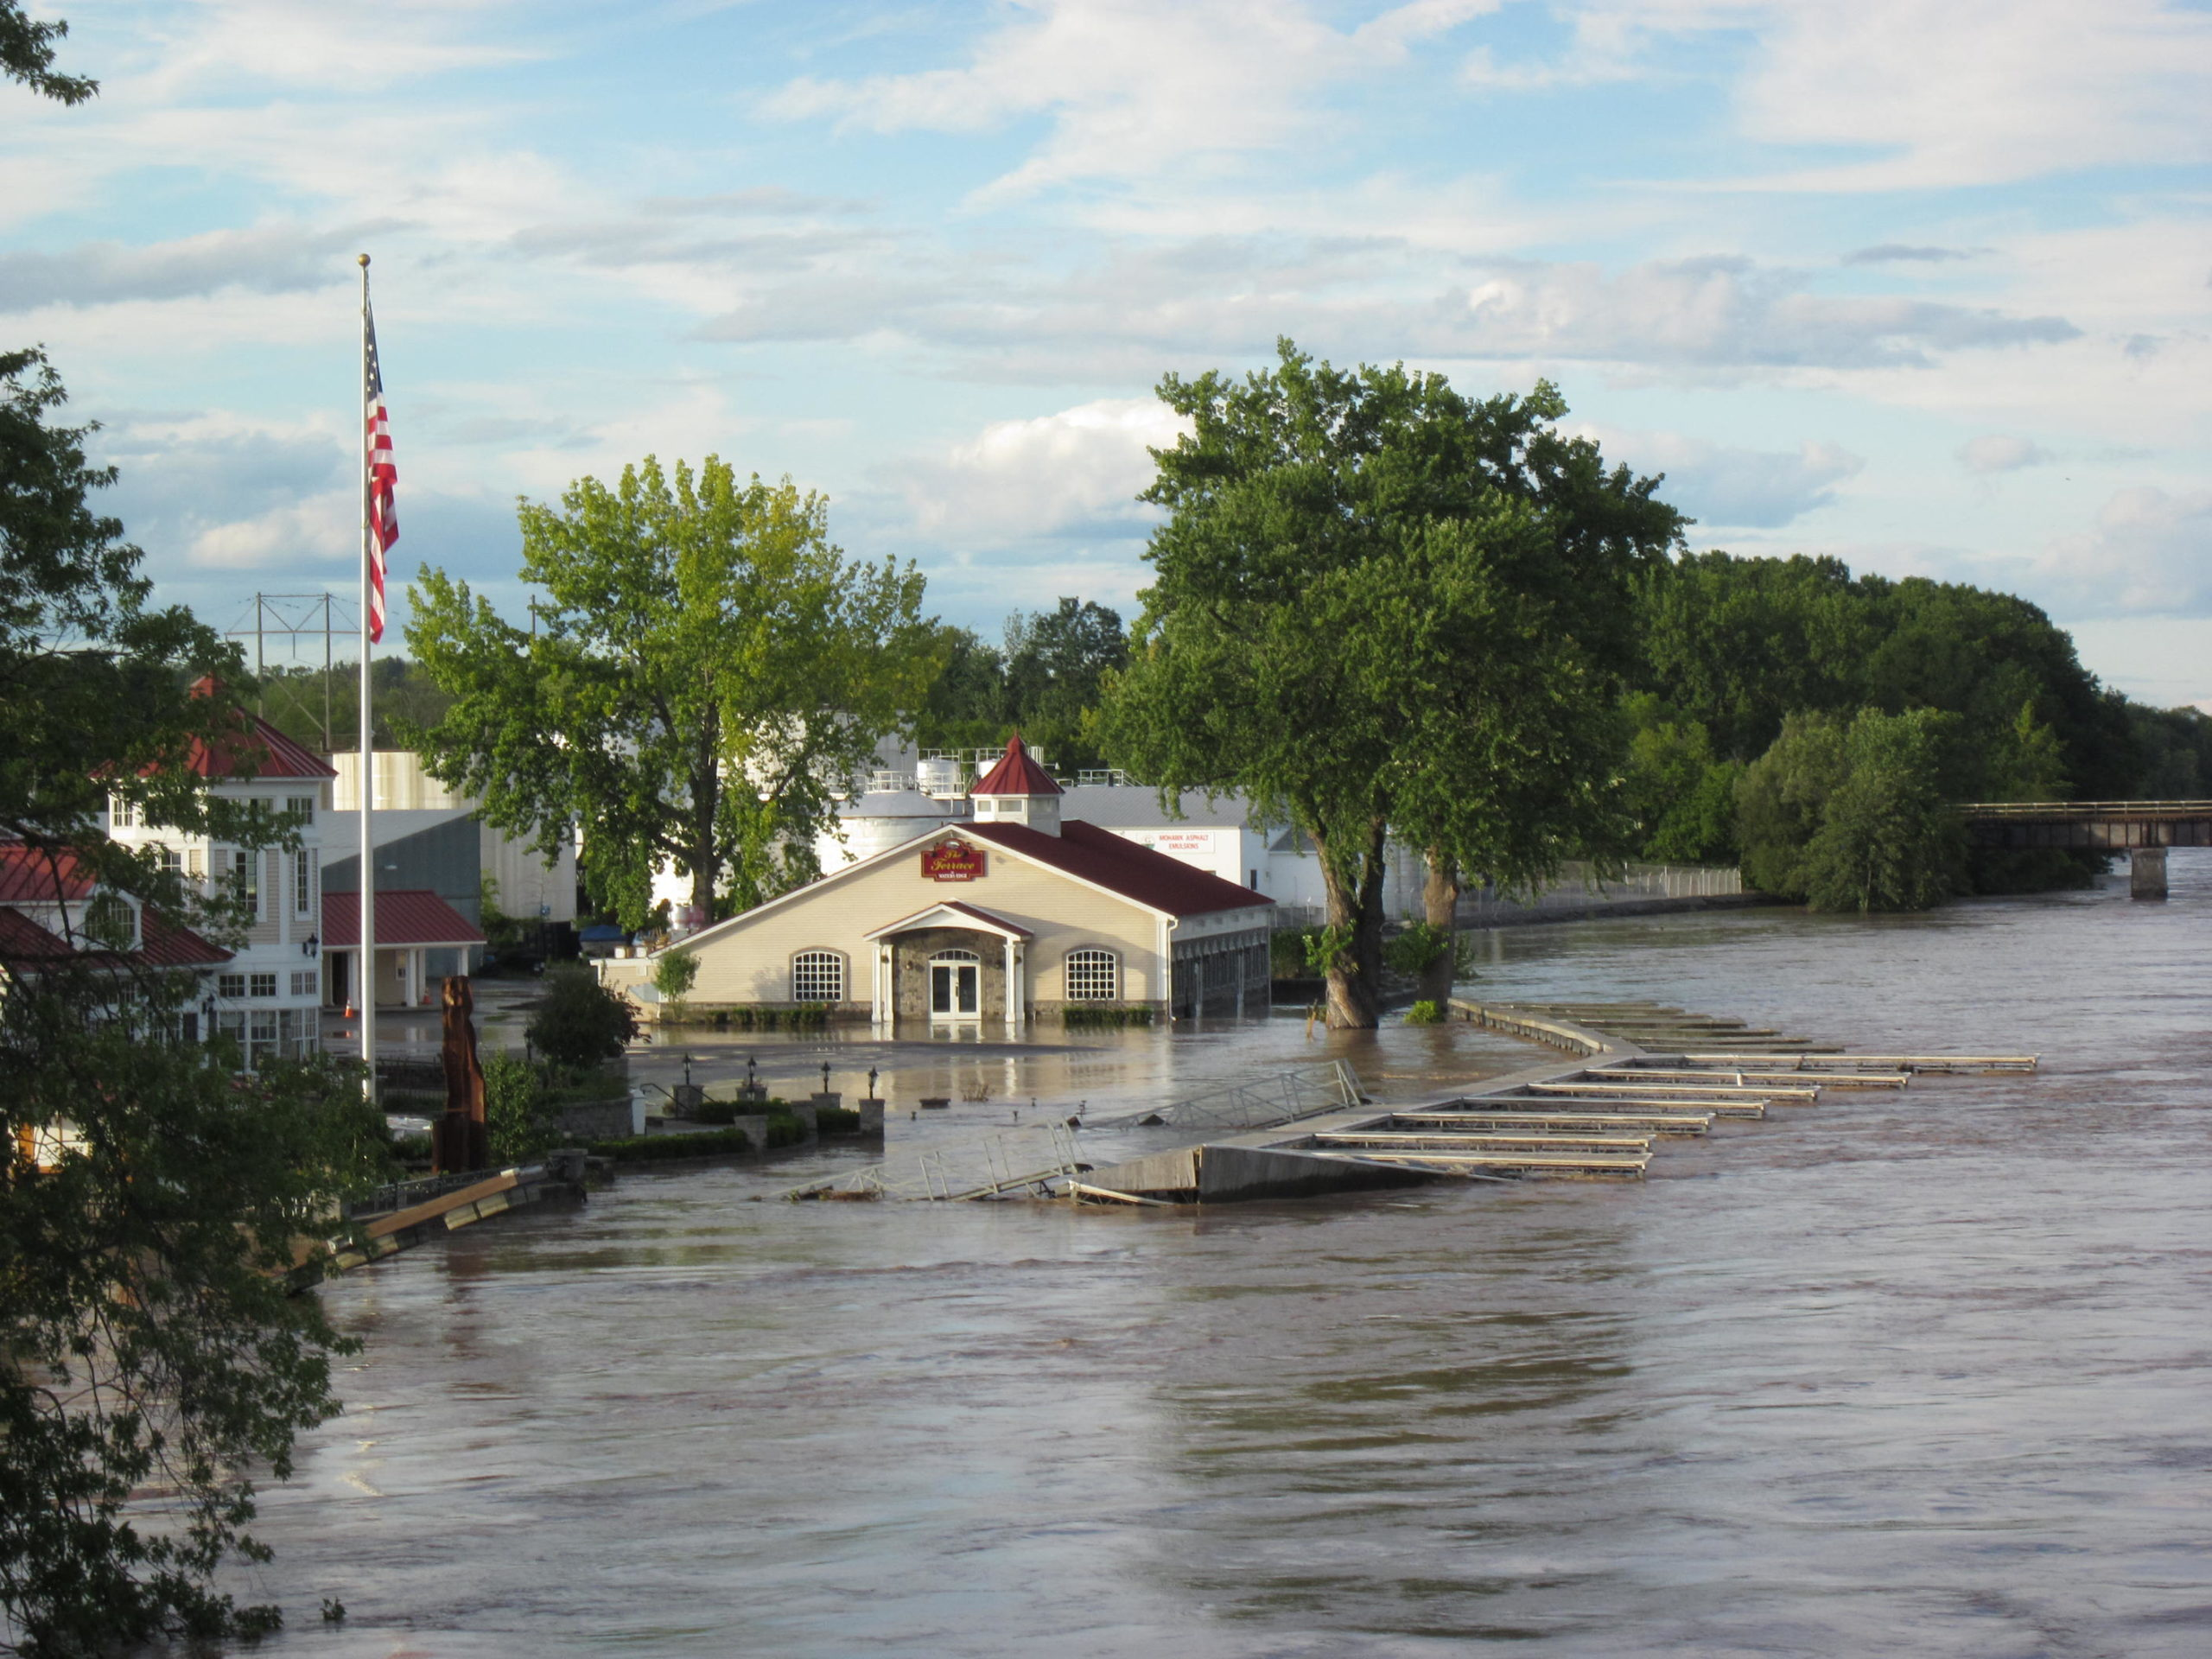 Flooding and submerged buildings in NY after Hurricane Irene 2011